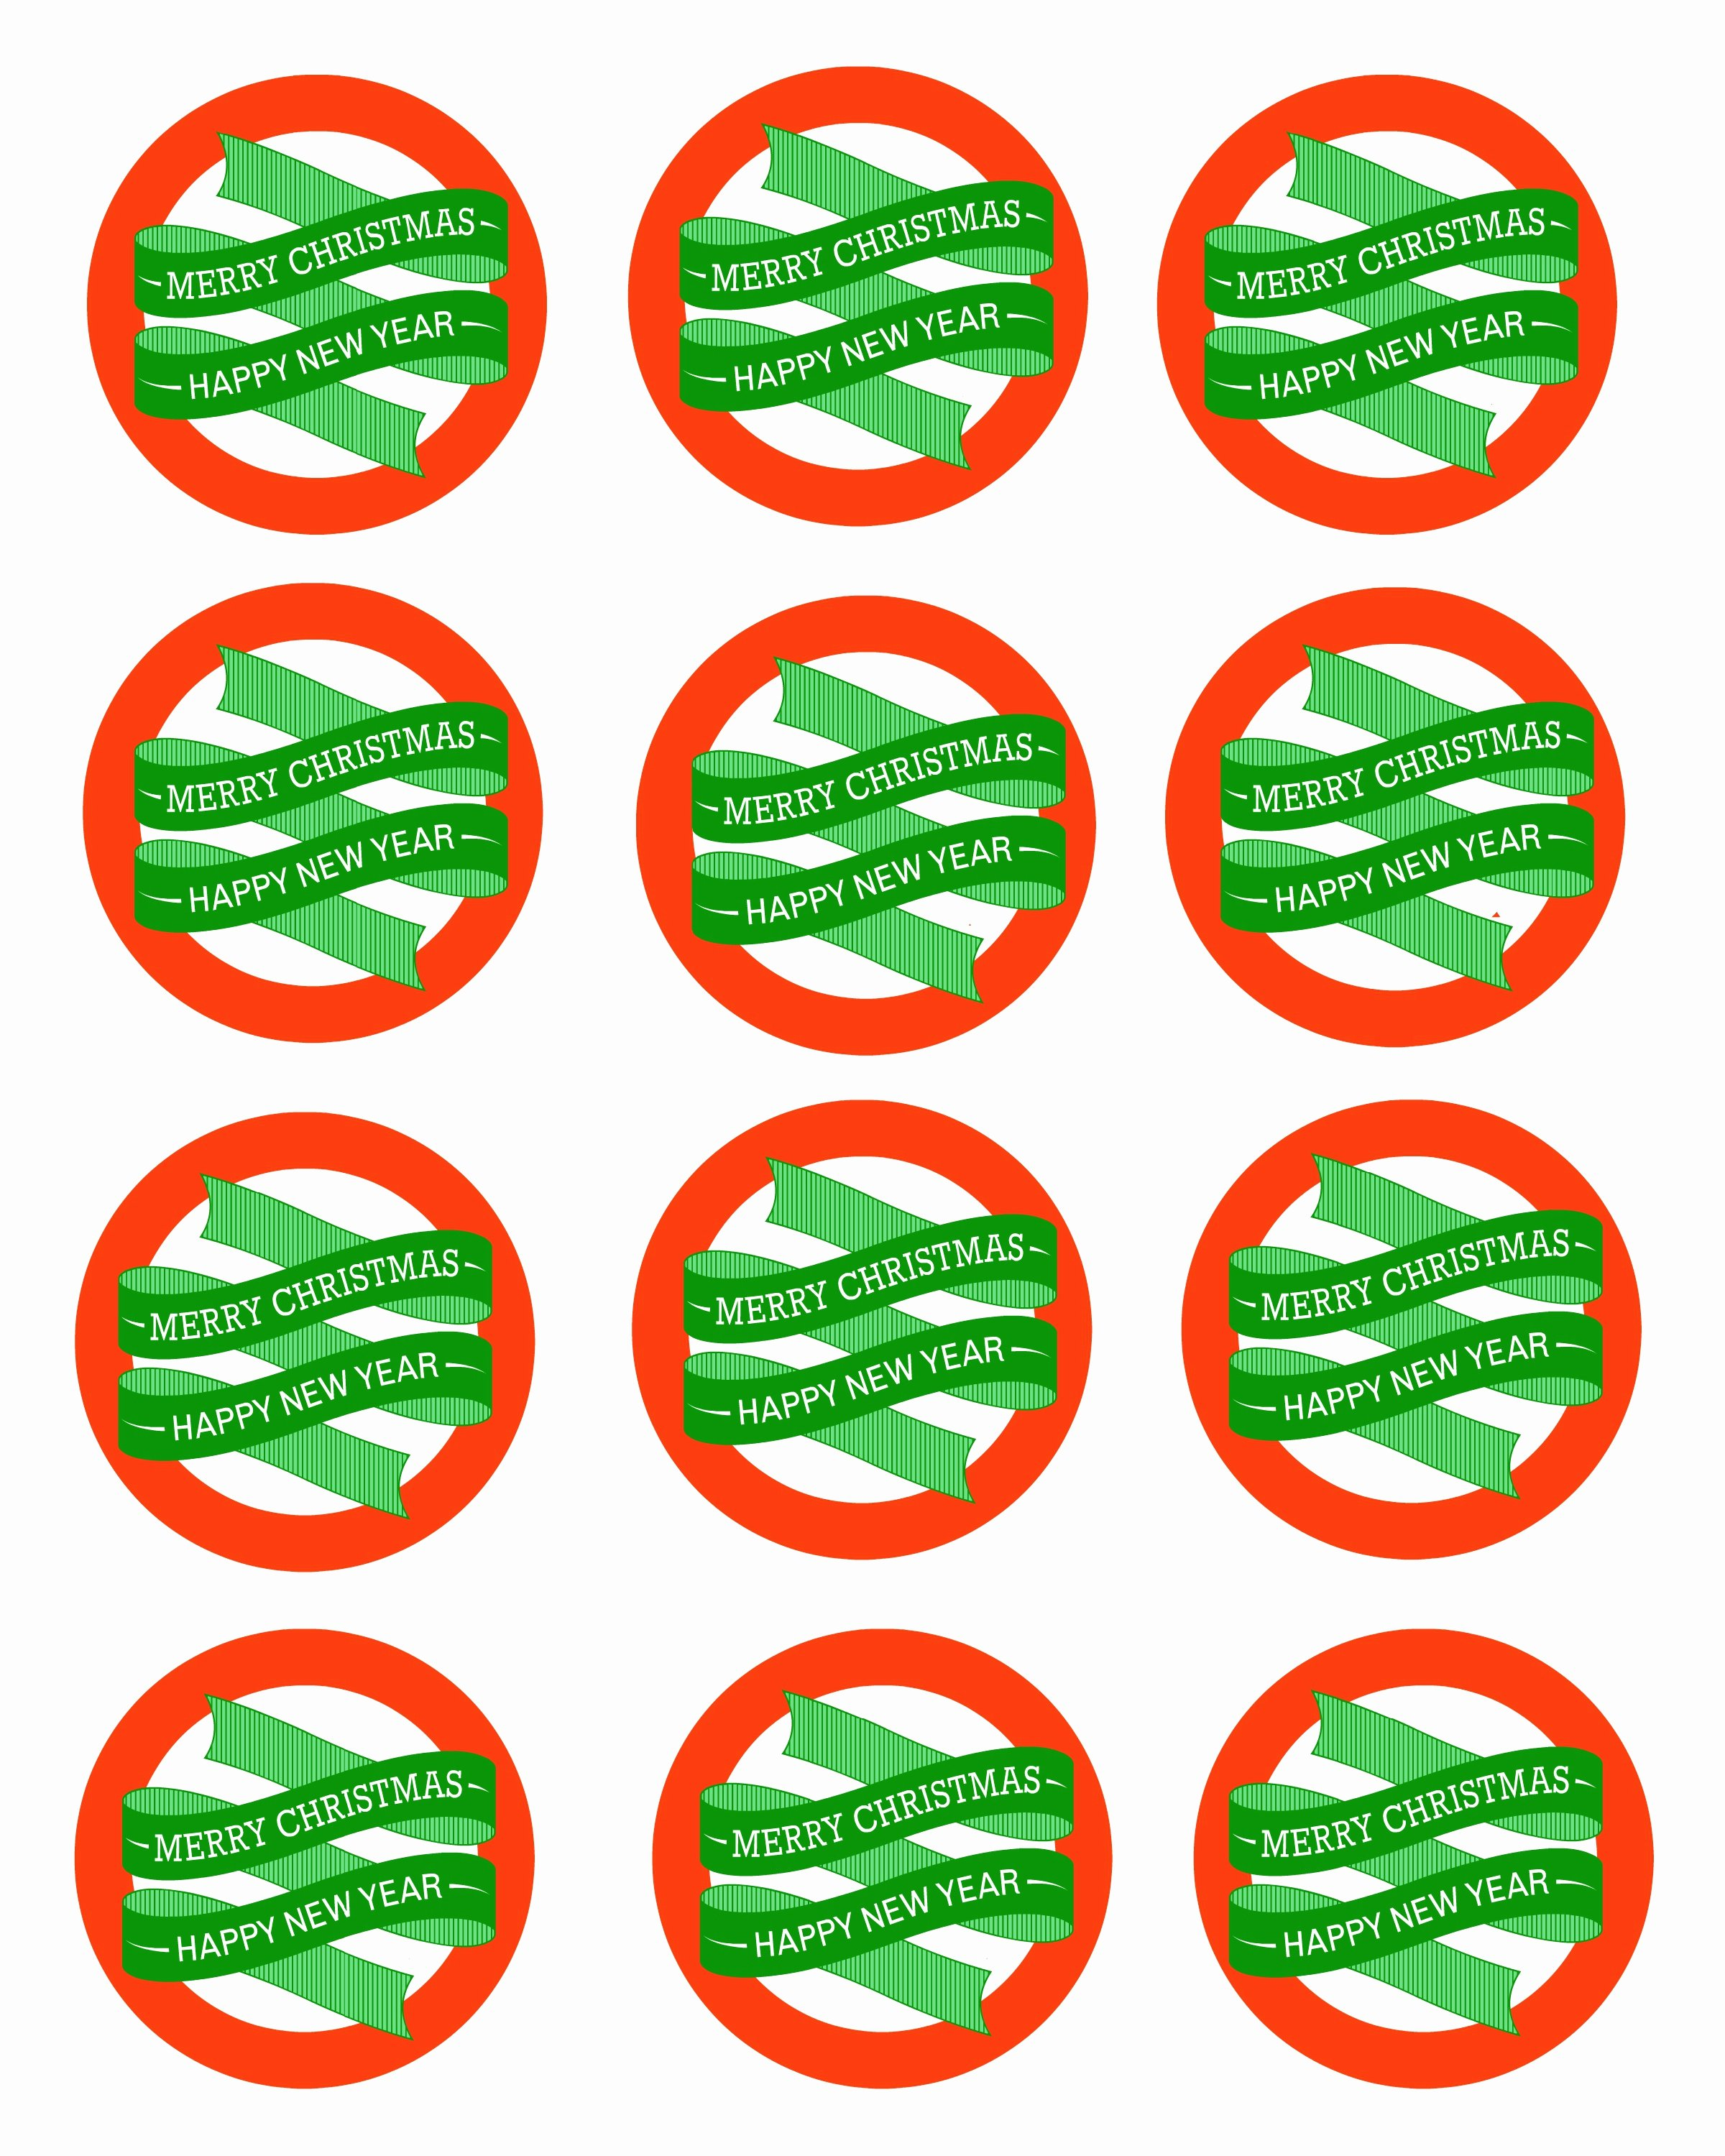 Printable Mason Jar Templates New Free Printable Mason Jar Gift Labels – Merry Christmas